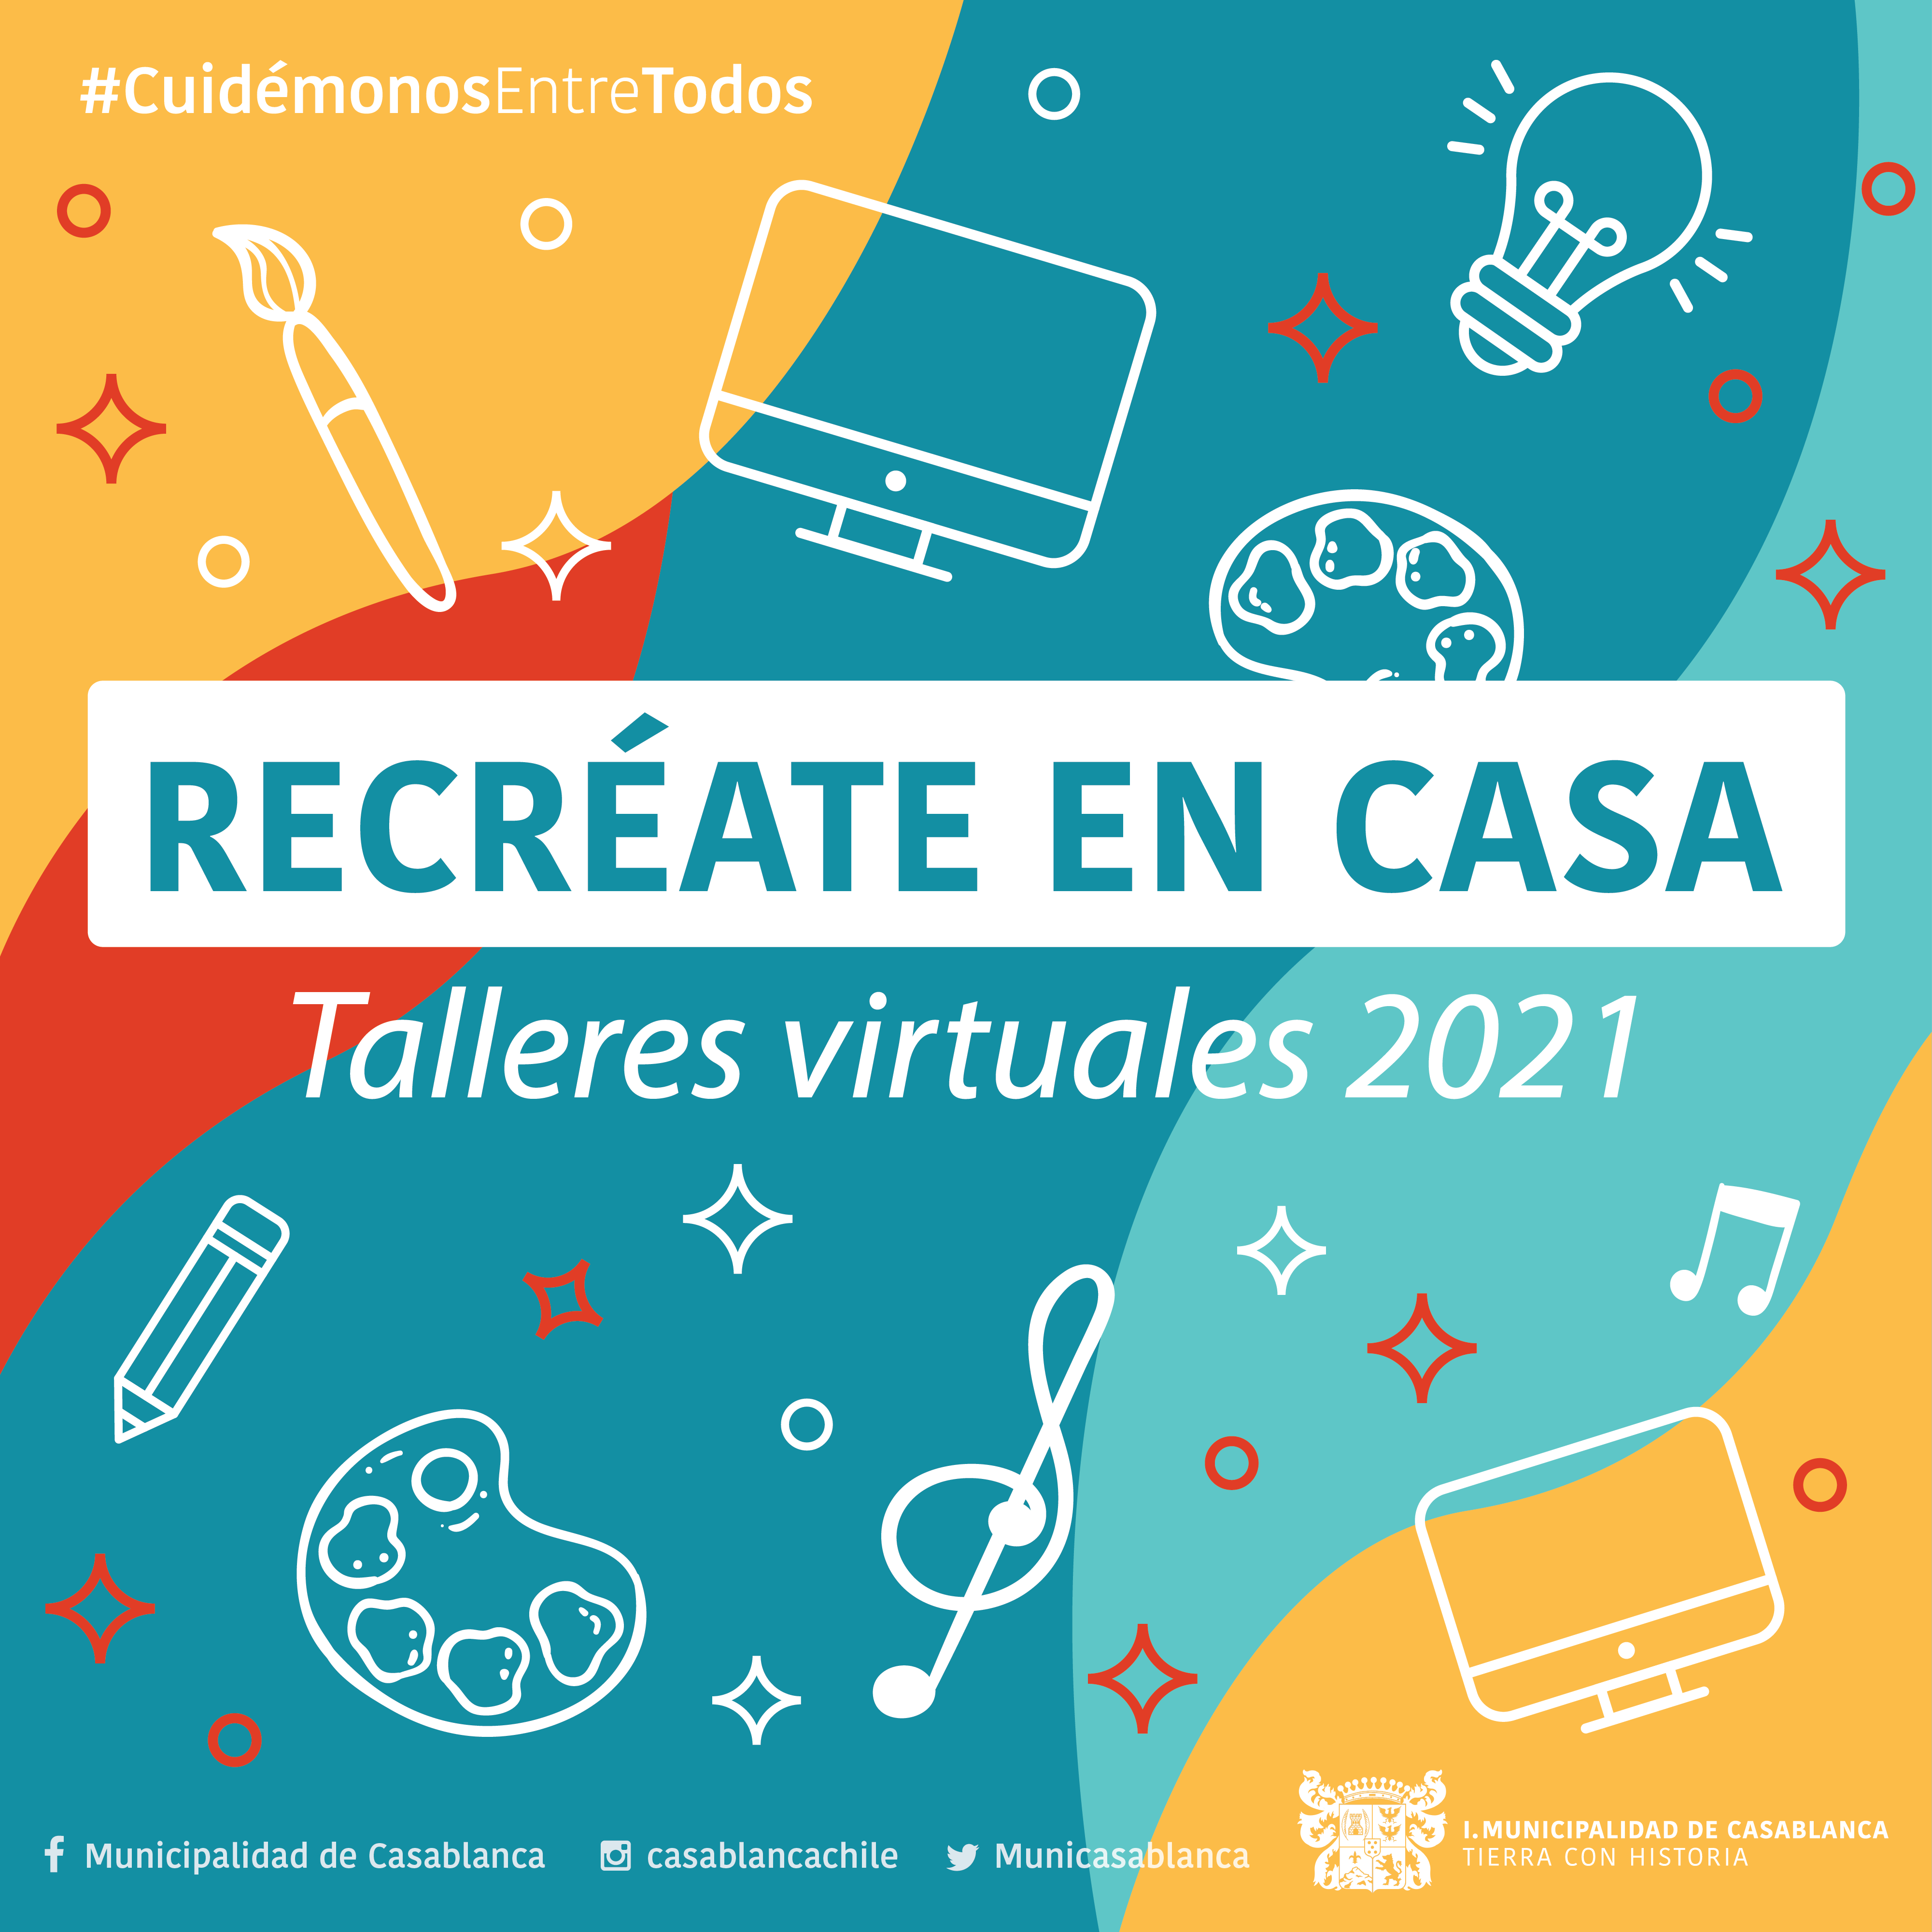 Recreate en casa 2021